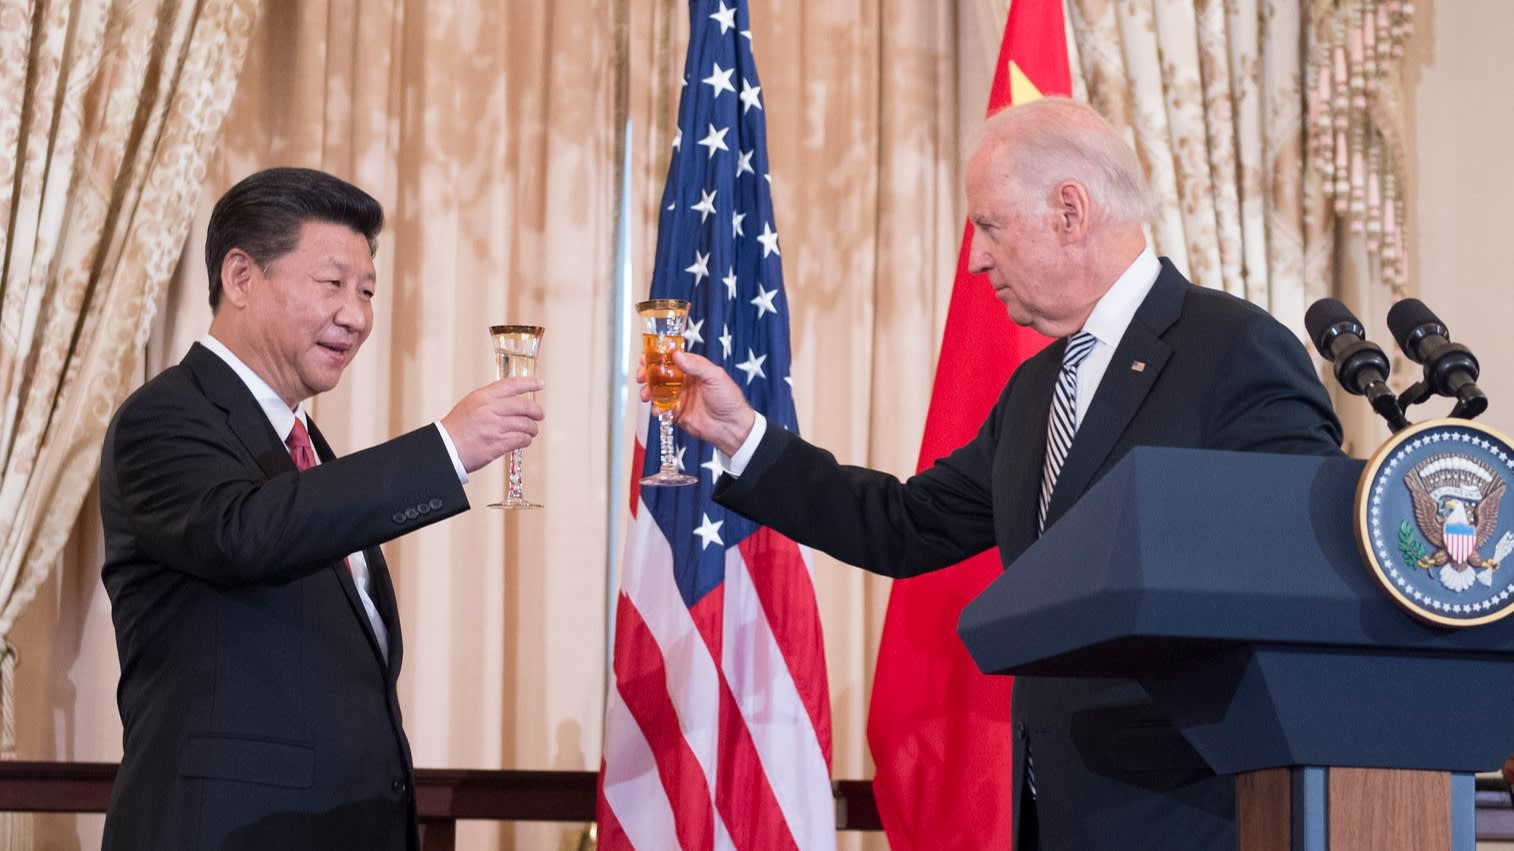 Chinese leader Xi Jinping finally congratulates Joe Biden on winning the US presidential election